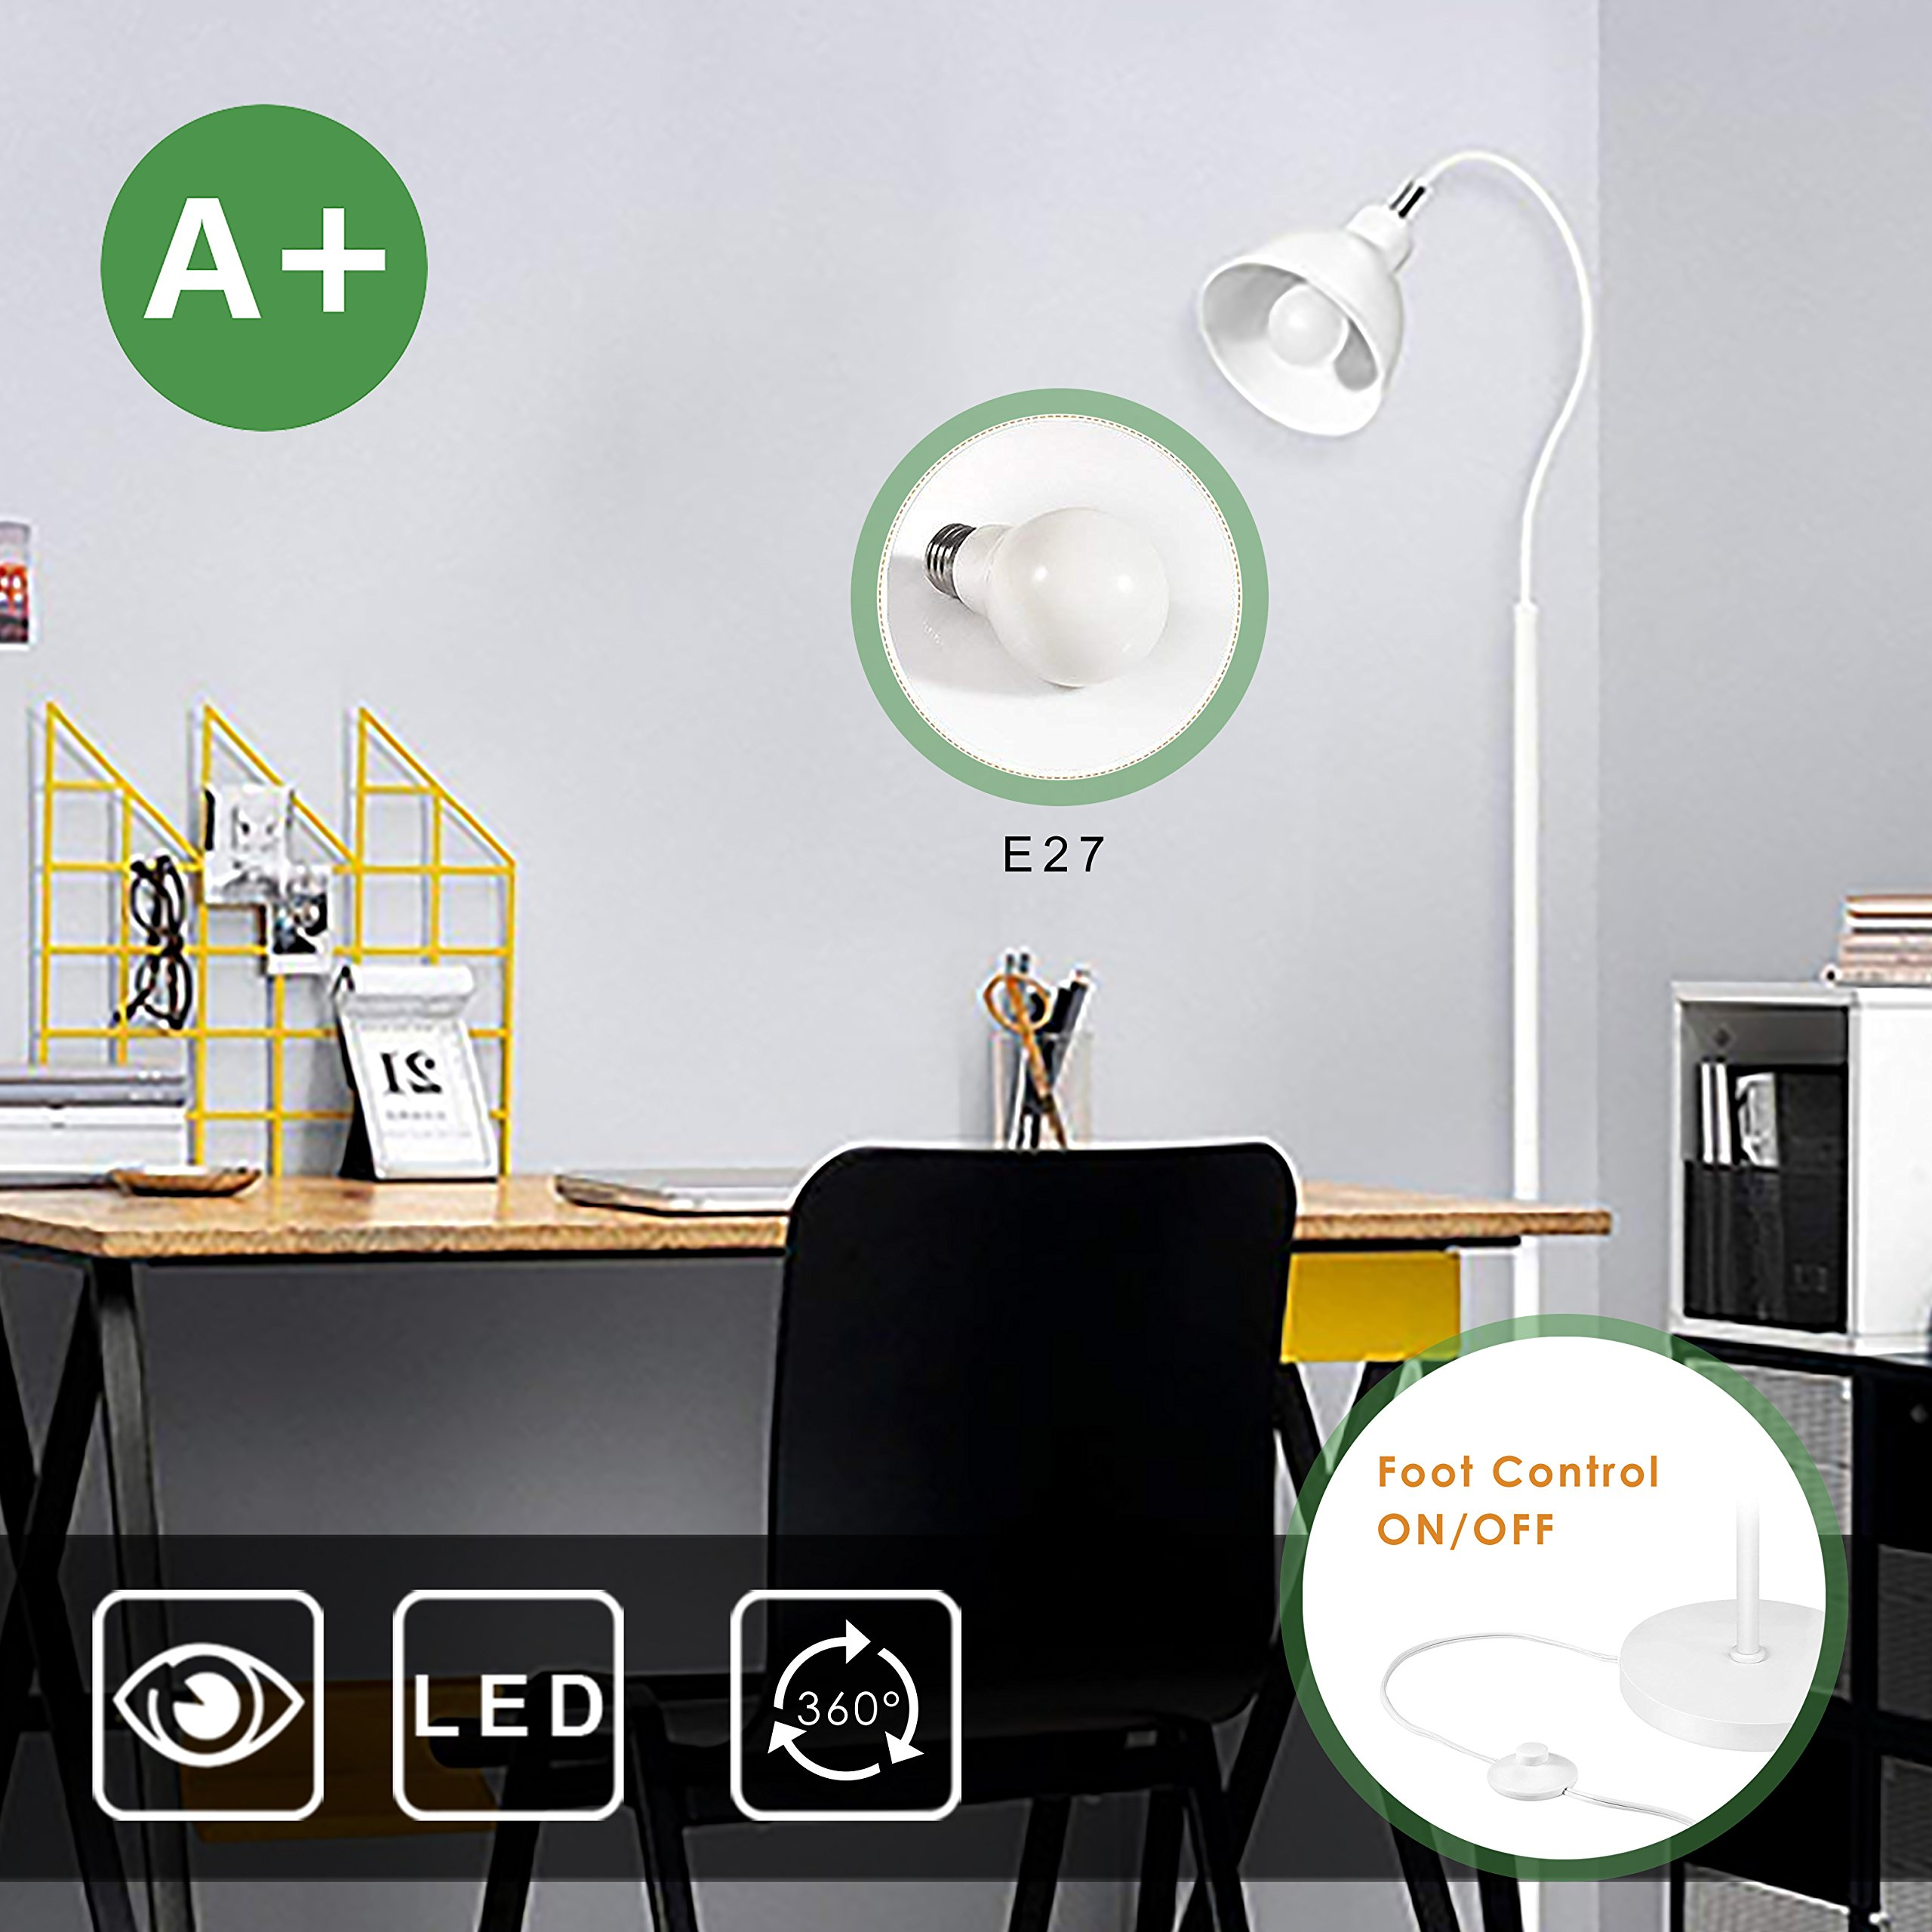 Aglaia LED Floor Lamp, Warm White Light with Adjustable Lamp Head and Foot Control on/off Switch Modern Design in White Color for Studio, Living Room or Bedroom(bulb included)